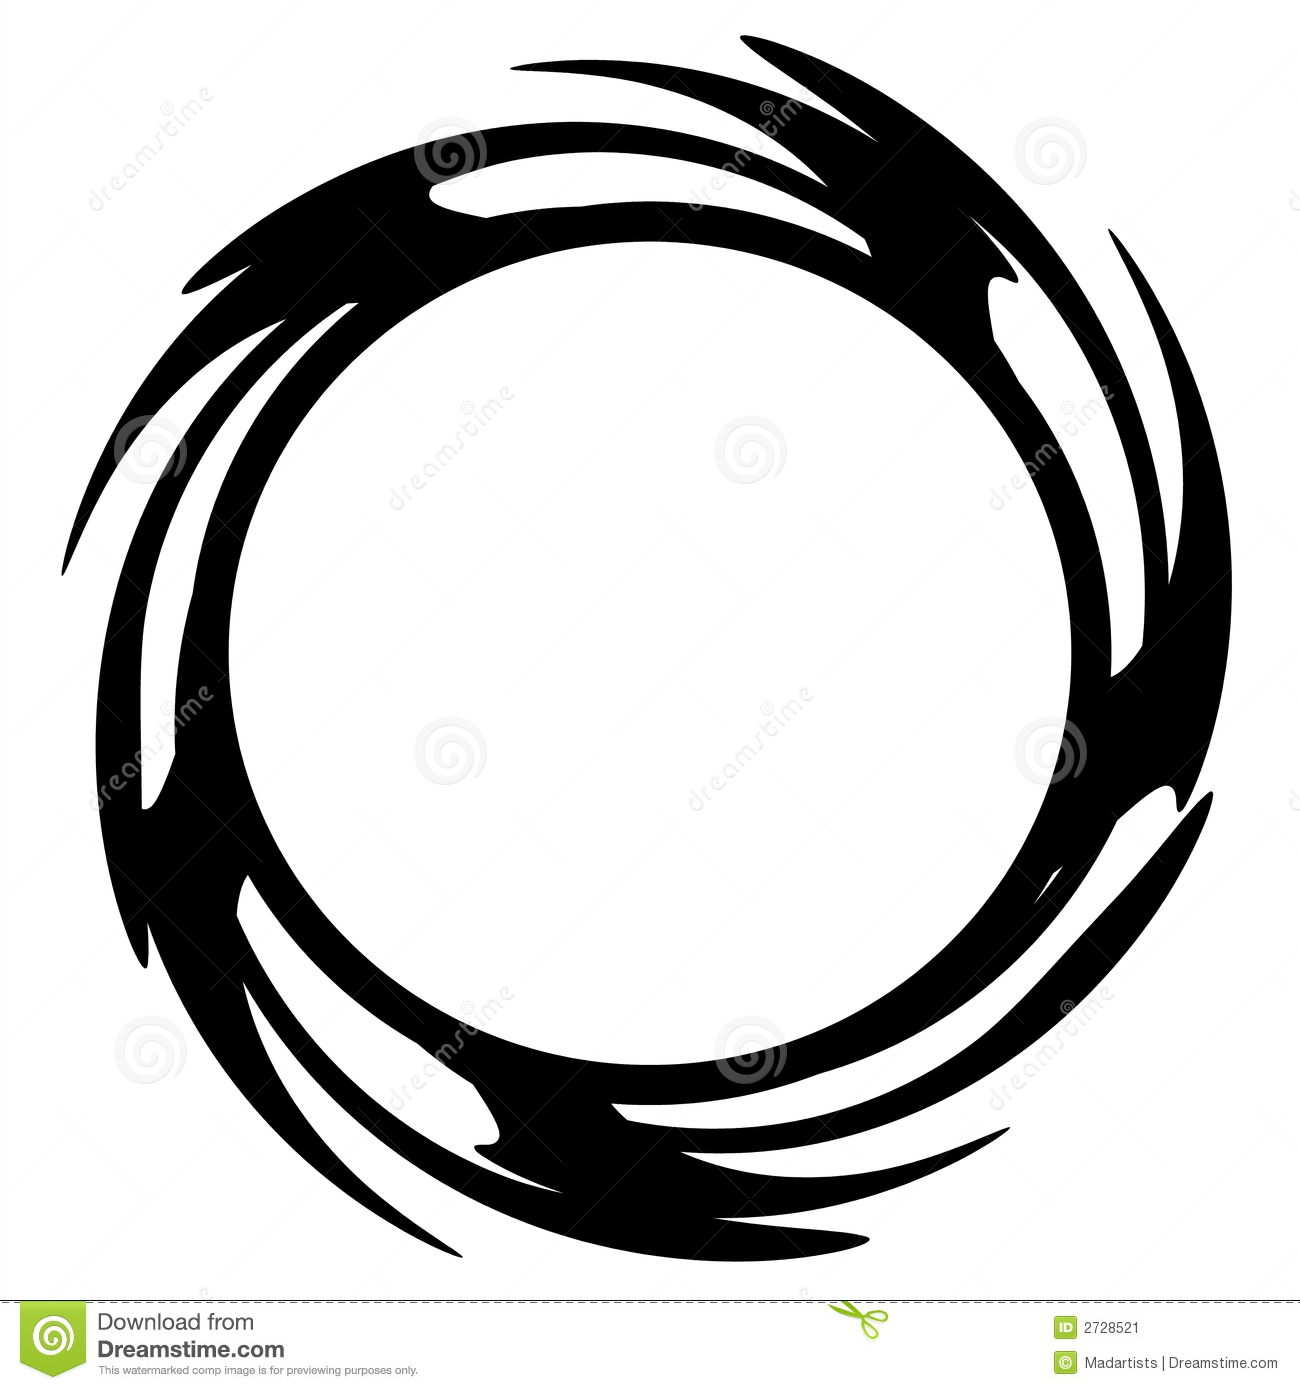 circle ring or hoop web logo stock illustration illustration of illustrations coils 2728521 dreamstime com